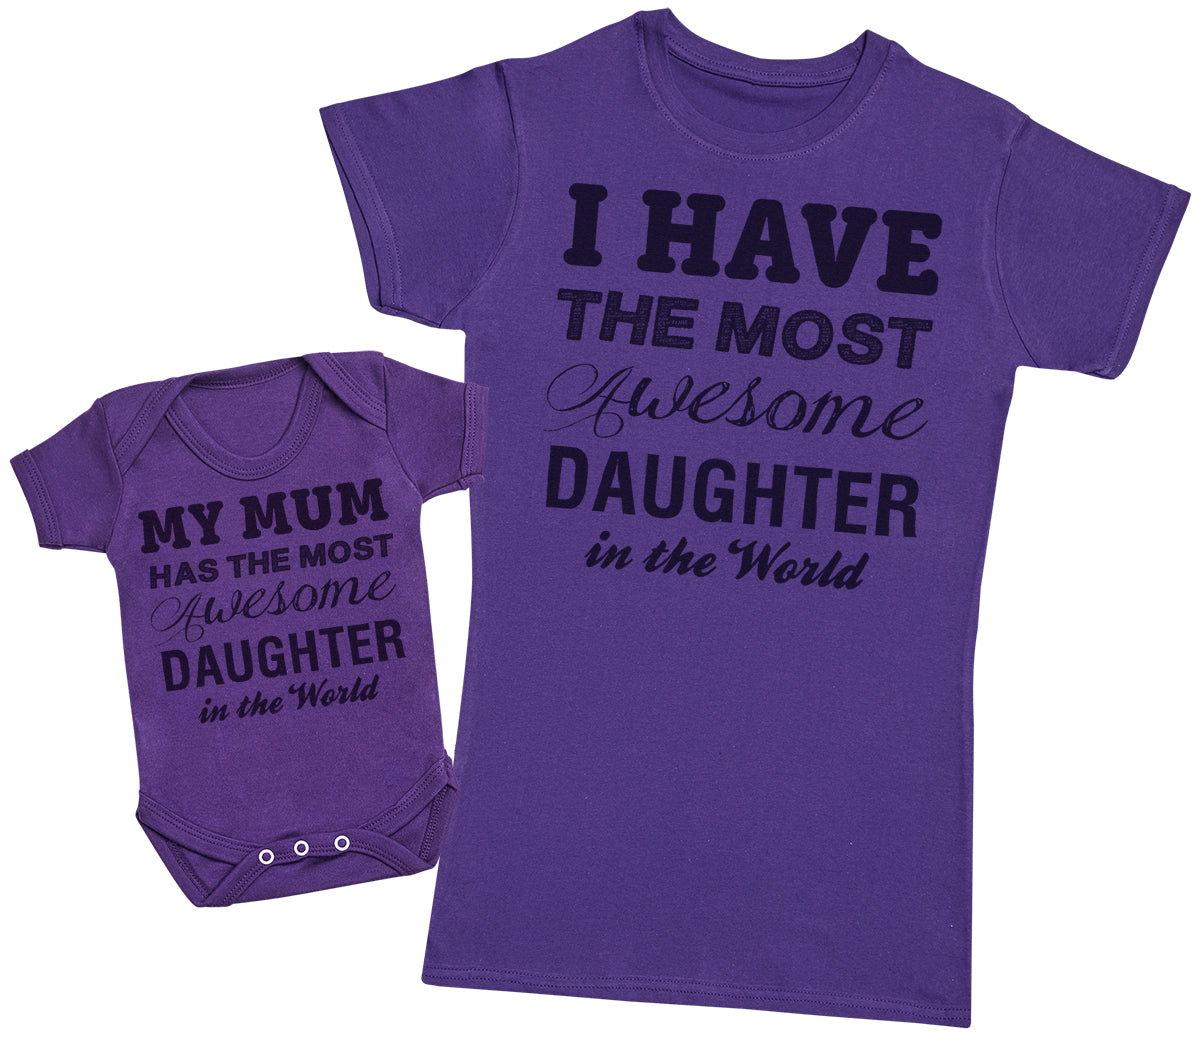 Awesome Daughter- Mothers T-Shirt & Baby Bodysuit